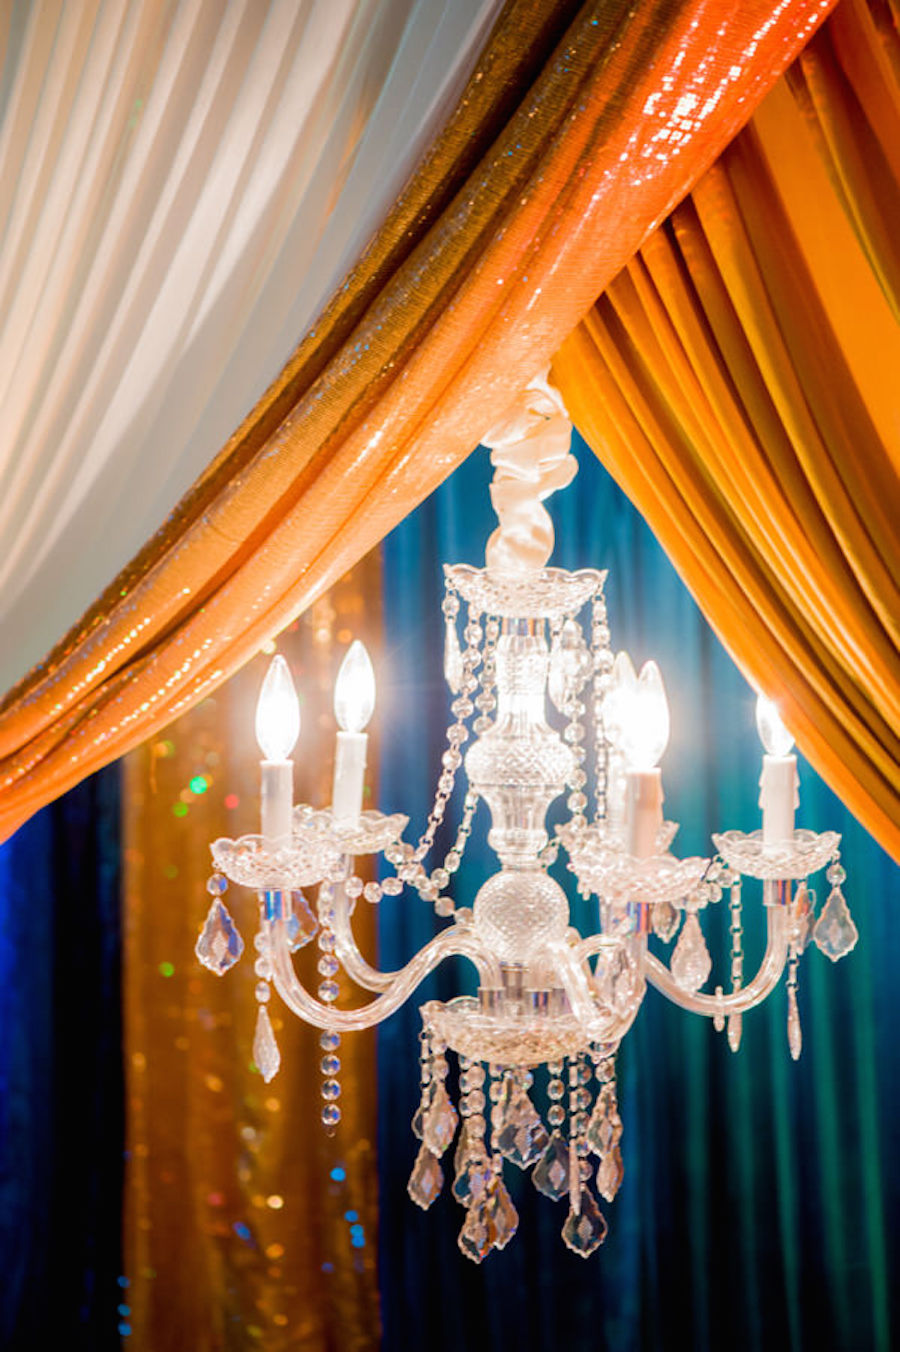 Crystal Chandelier Decor at Tampa Bay Indian Wedding with Teal and Gold Draping at The Palmetto Club at Fishhawk Ranch